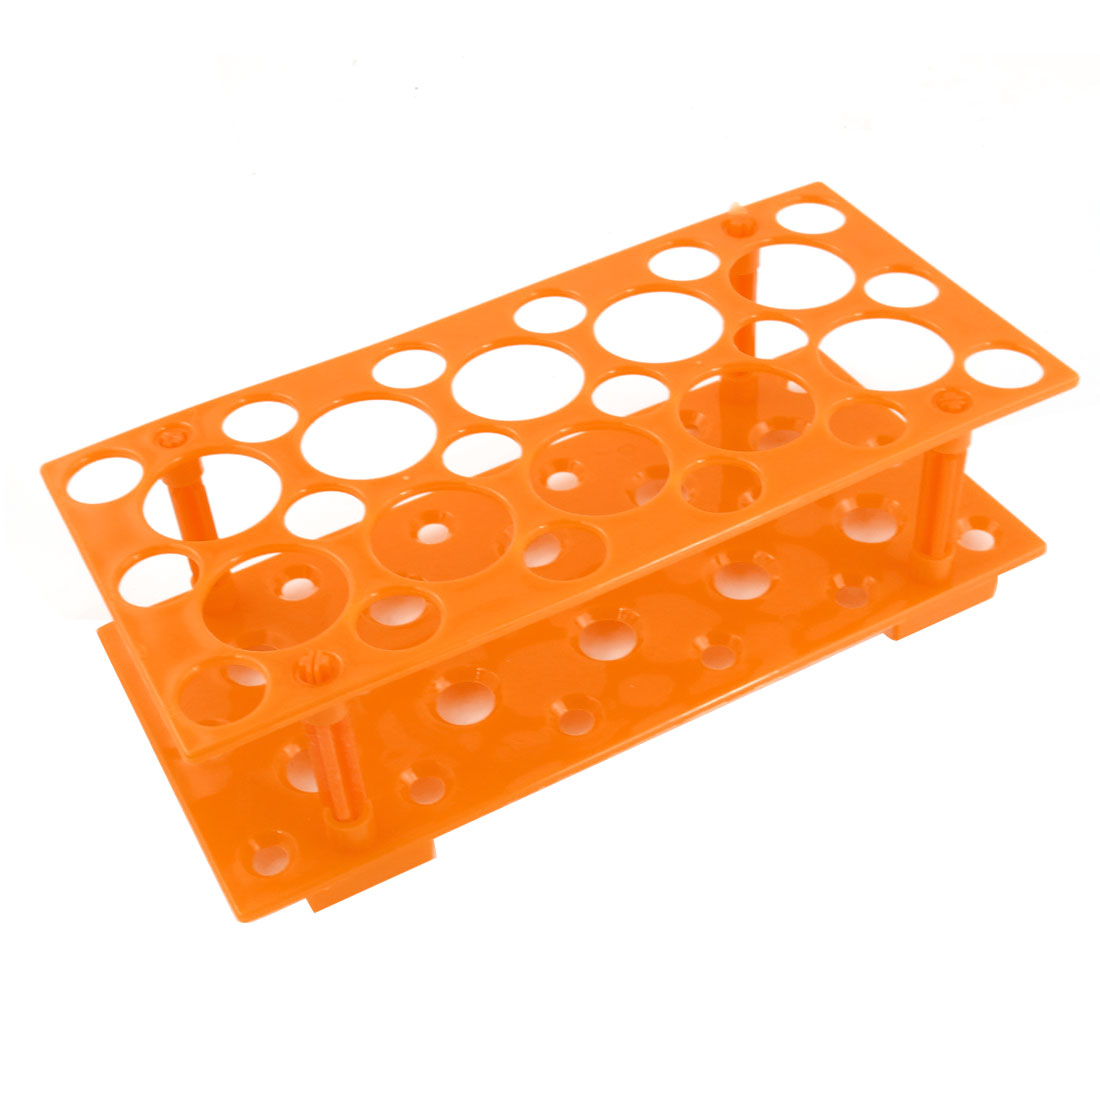 Plastic 2 Layers Detachable 5mL 10ml 50ml Centrifuge Tube Rack Orange